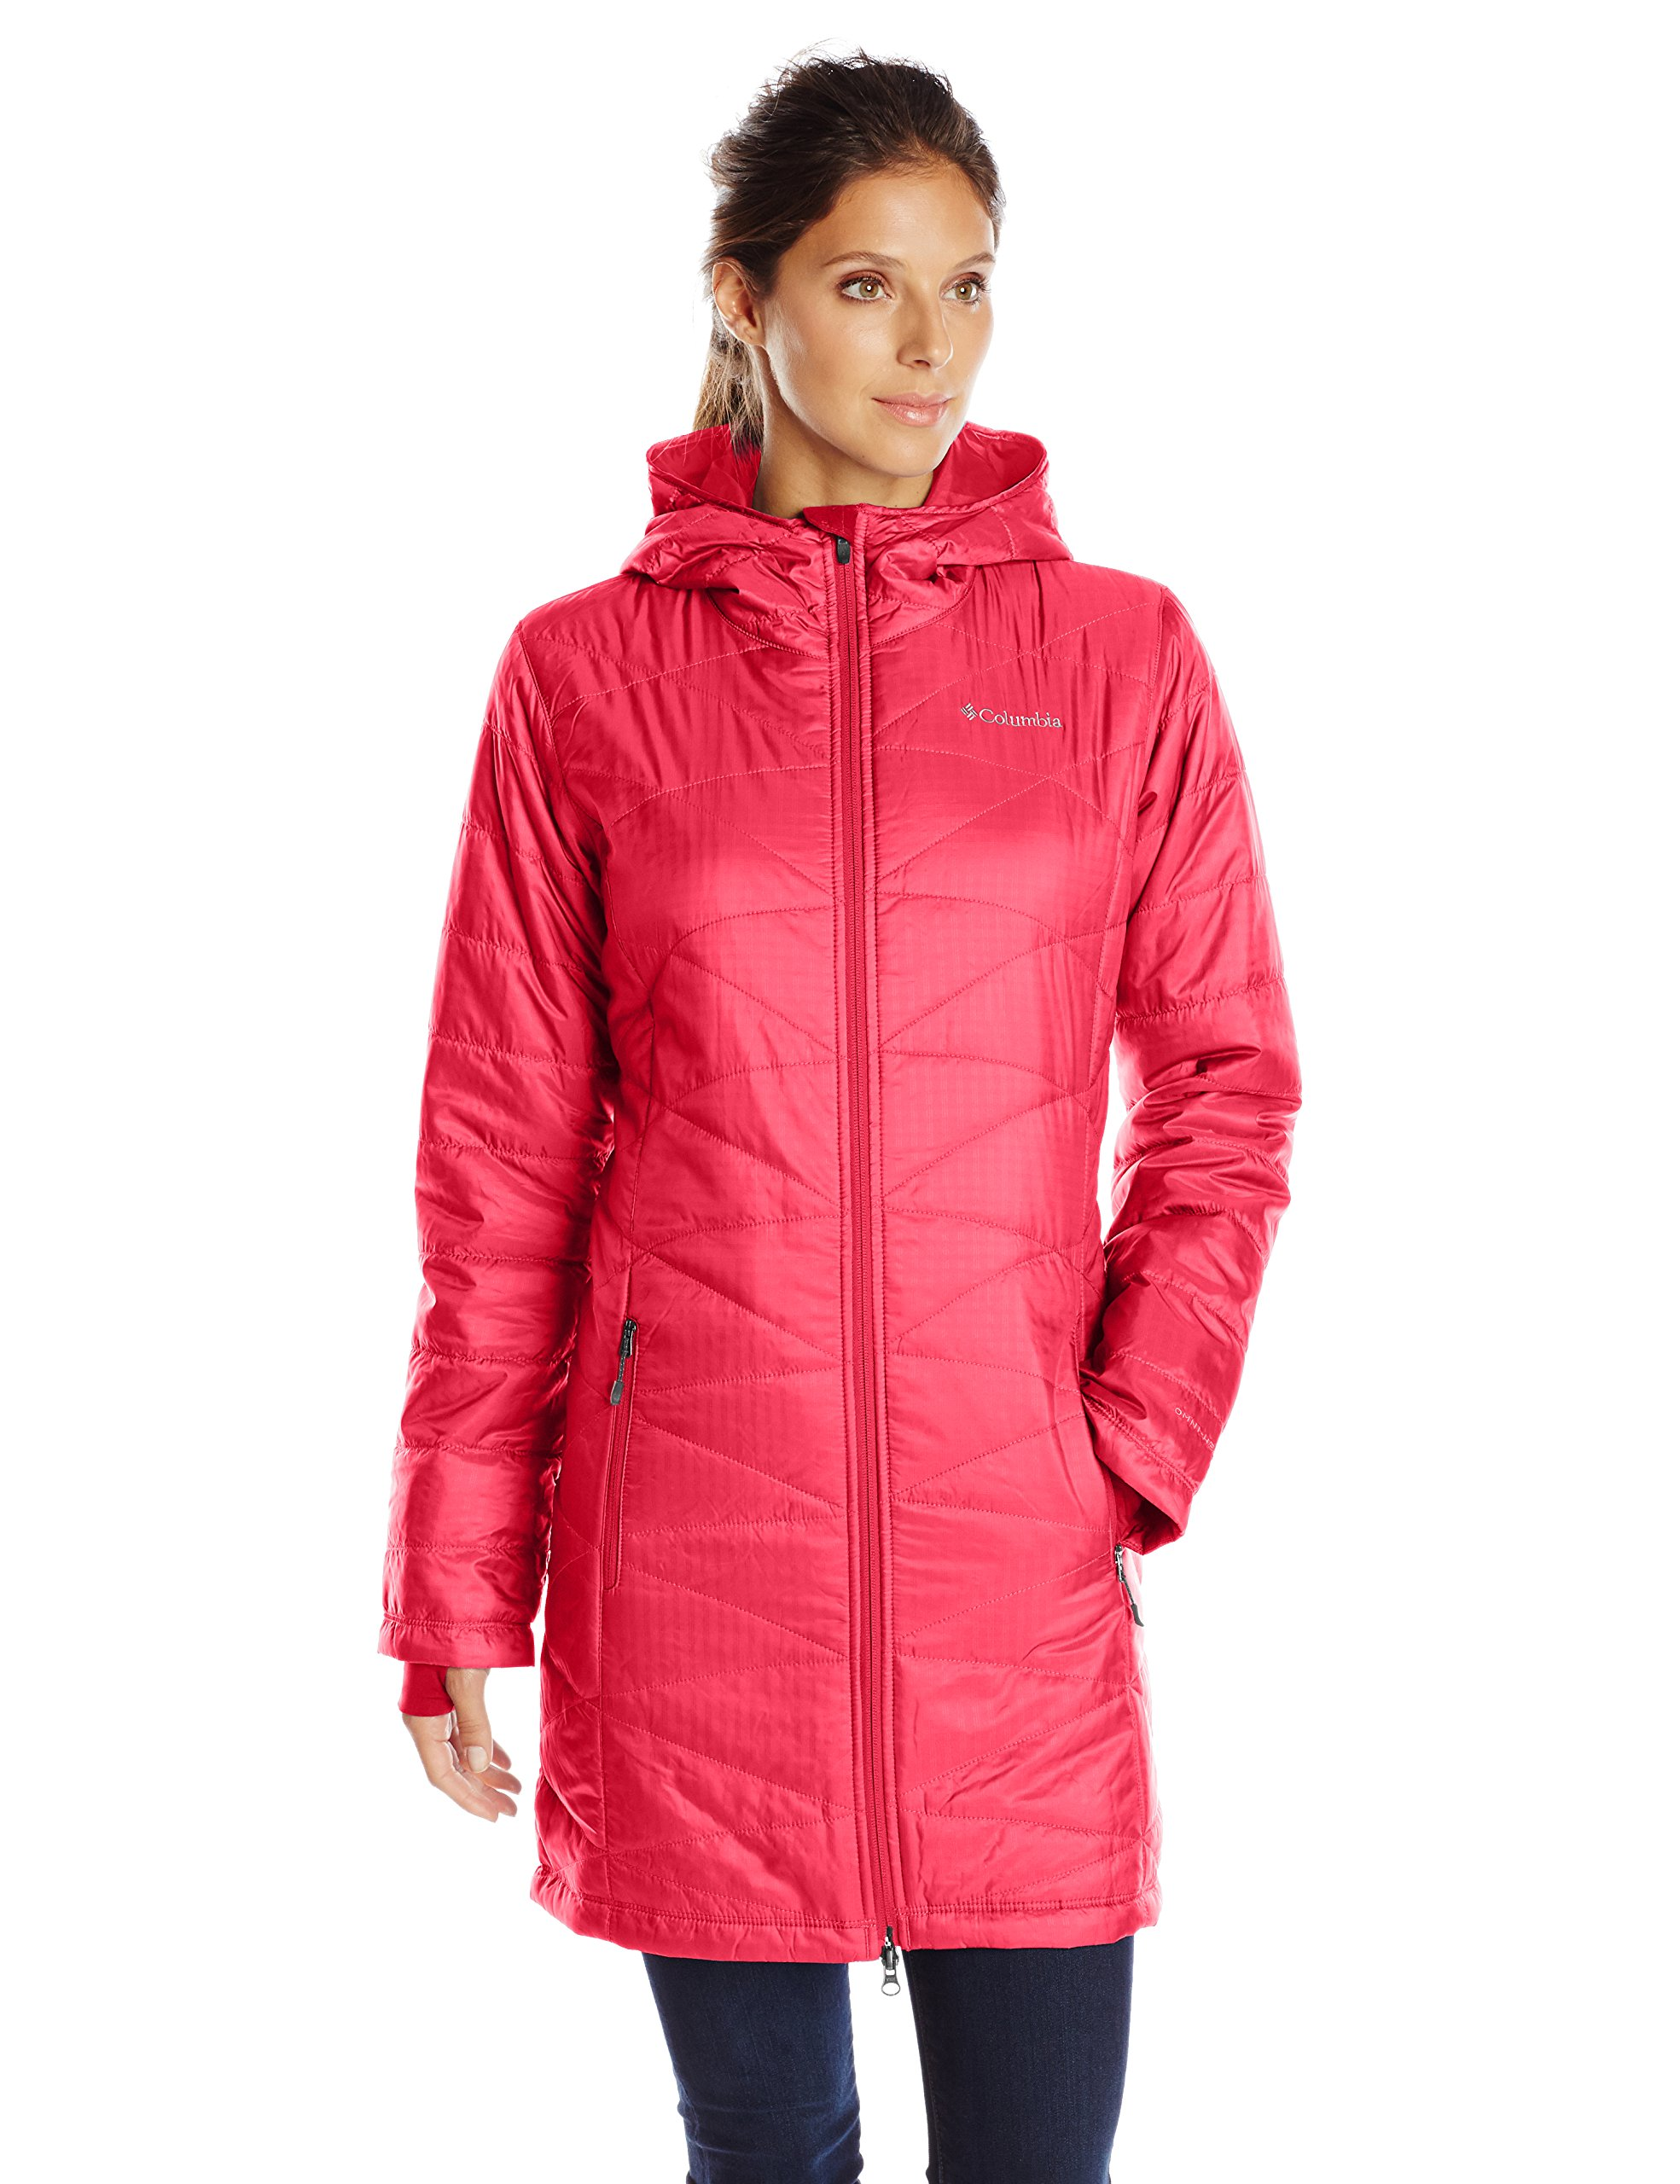 Columbia Women's Mighty Lite Hooded Jacket, Red Camellia, X-Small by Columbia